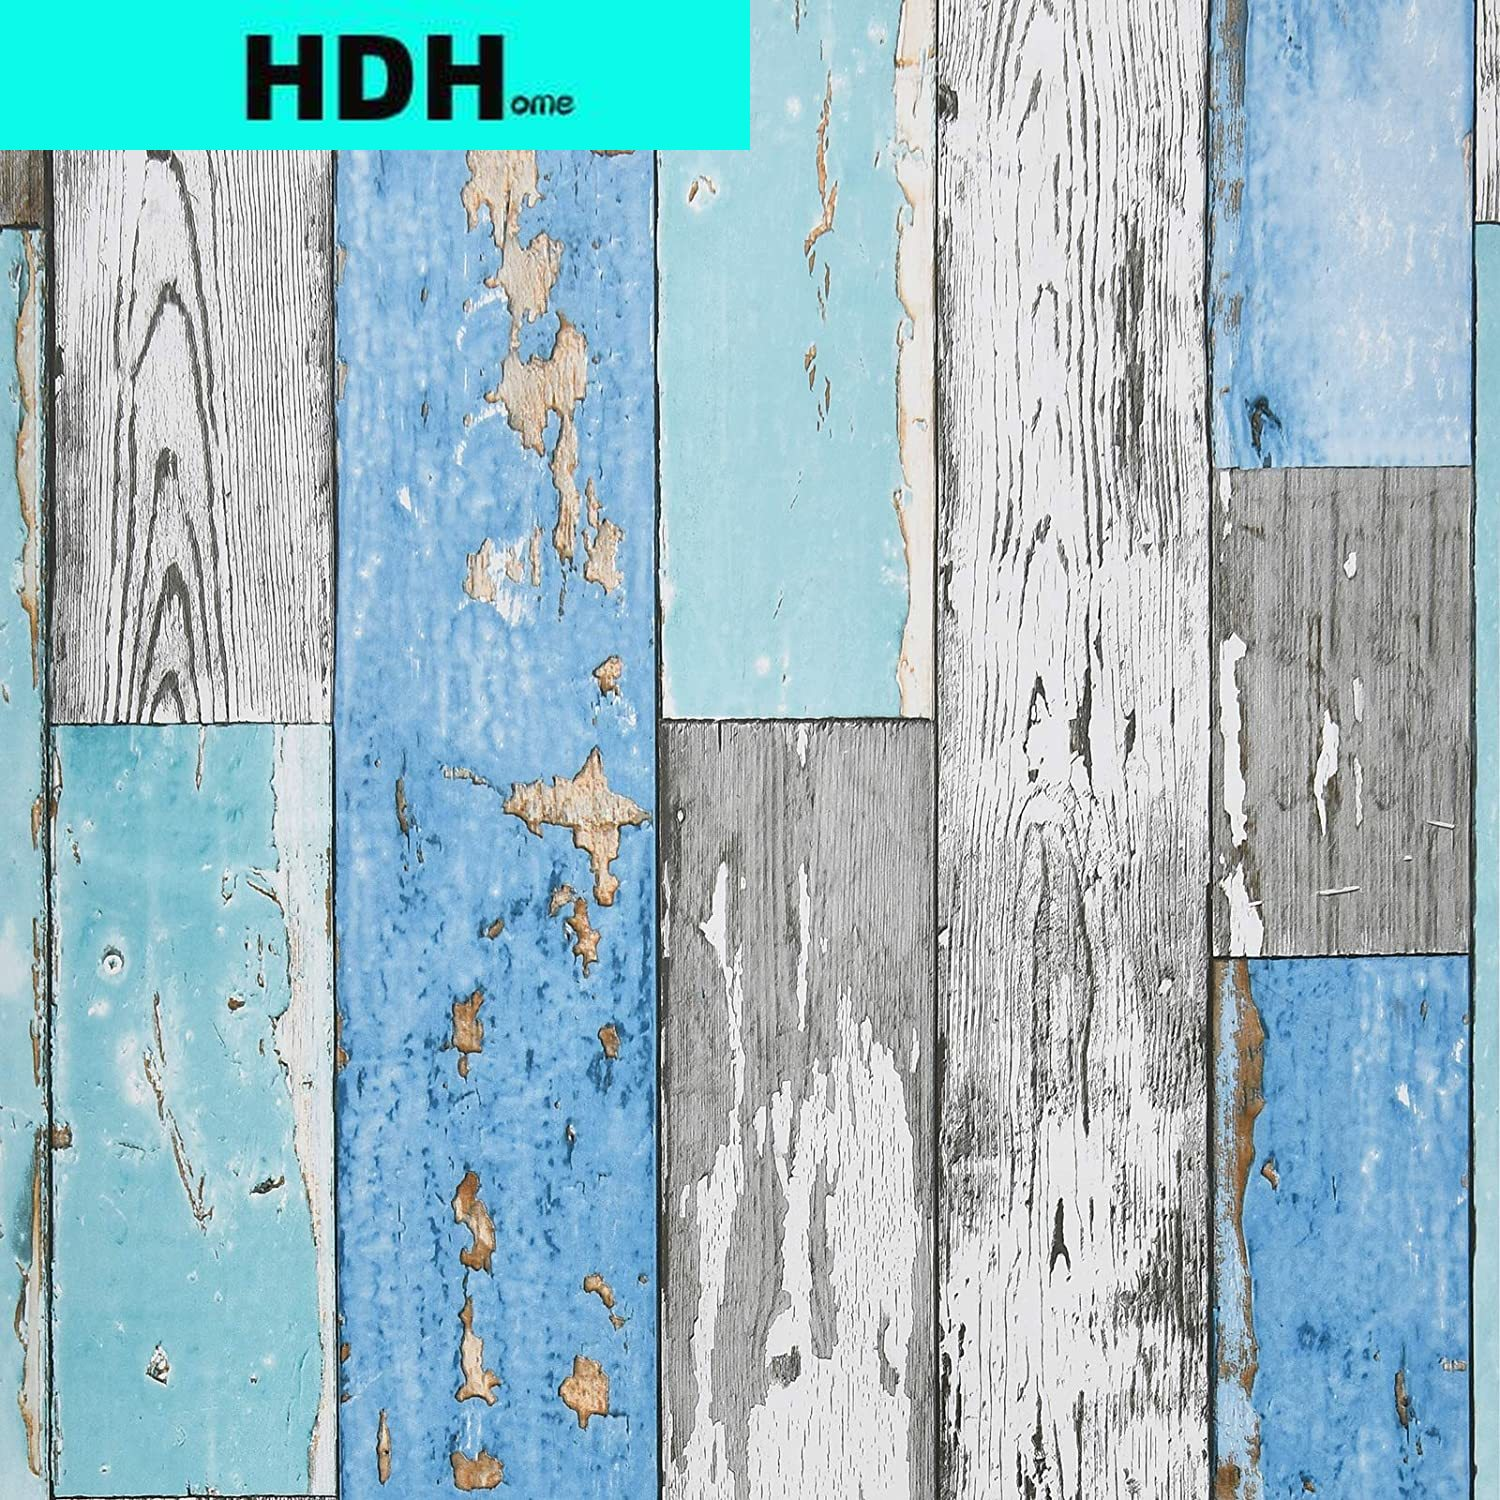 Wood Plank Wallpaper Blue Distressed Wood Wallpaper Peel and Stick Wood Grain Contact Paper Vintage for Furniture Bedroom Decor brown wood papers wood peel and stick wallpaper removable wood grain self adhesive vintage distressed wood grain renovated paper